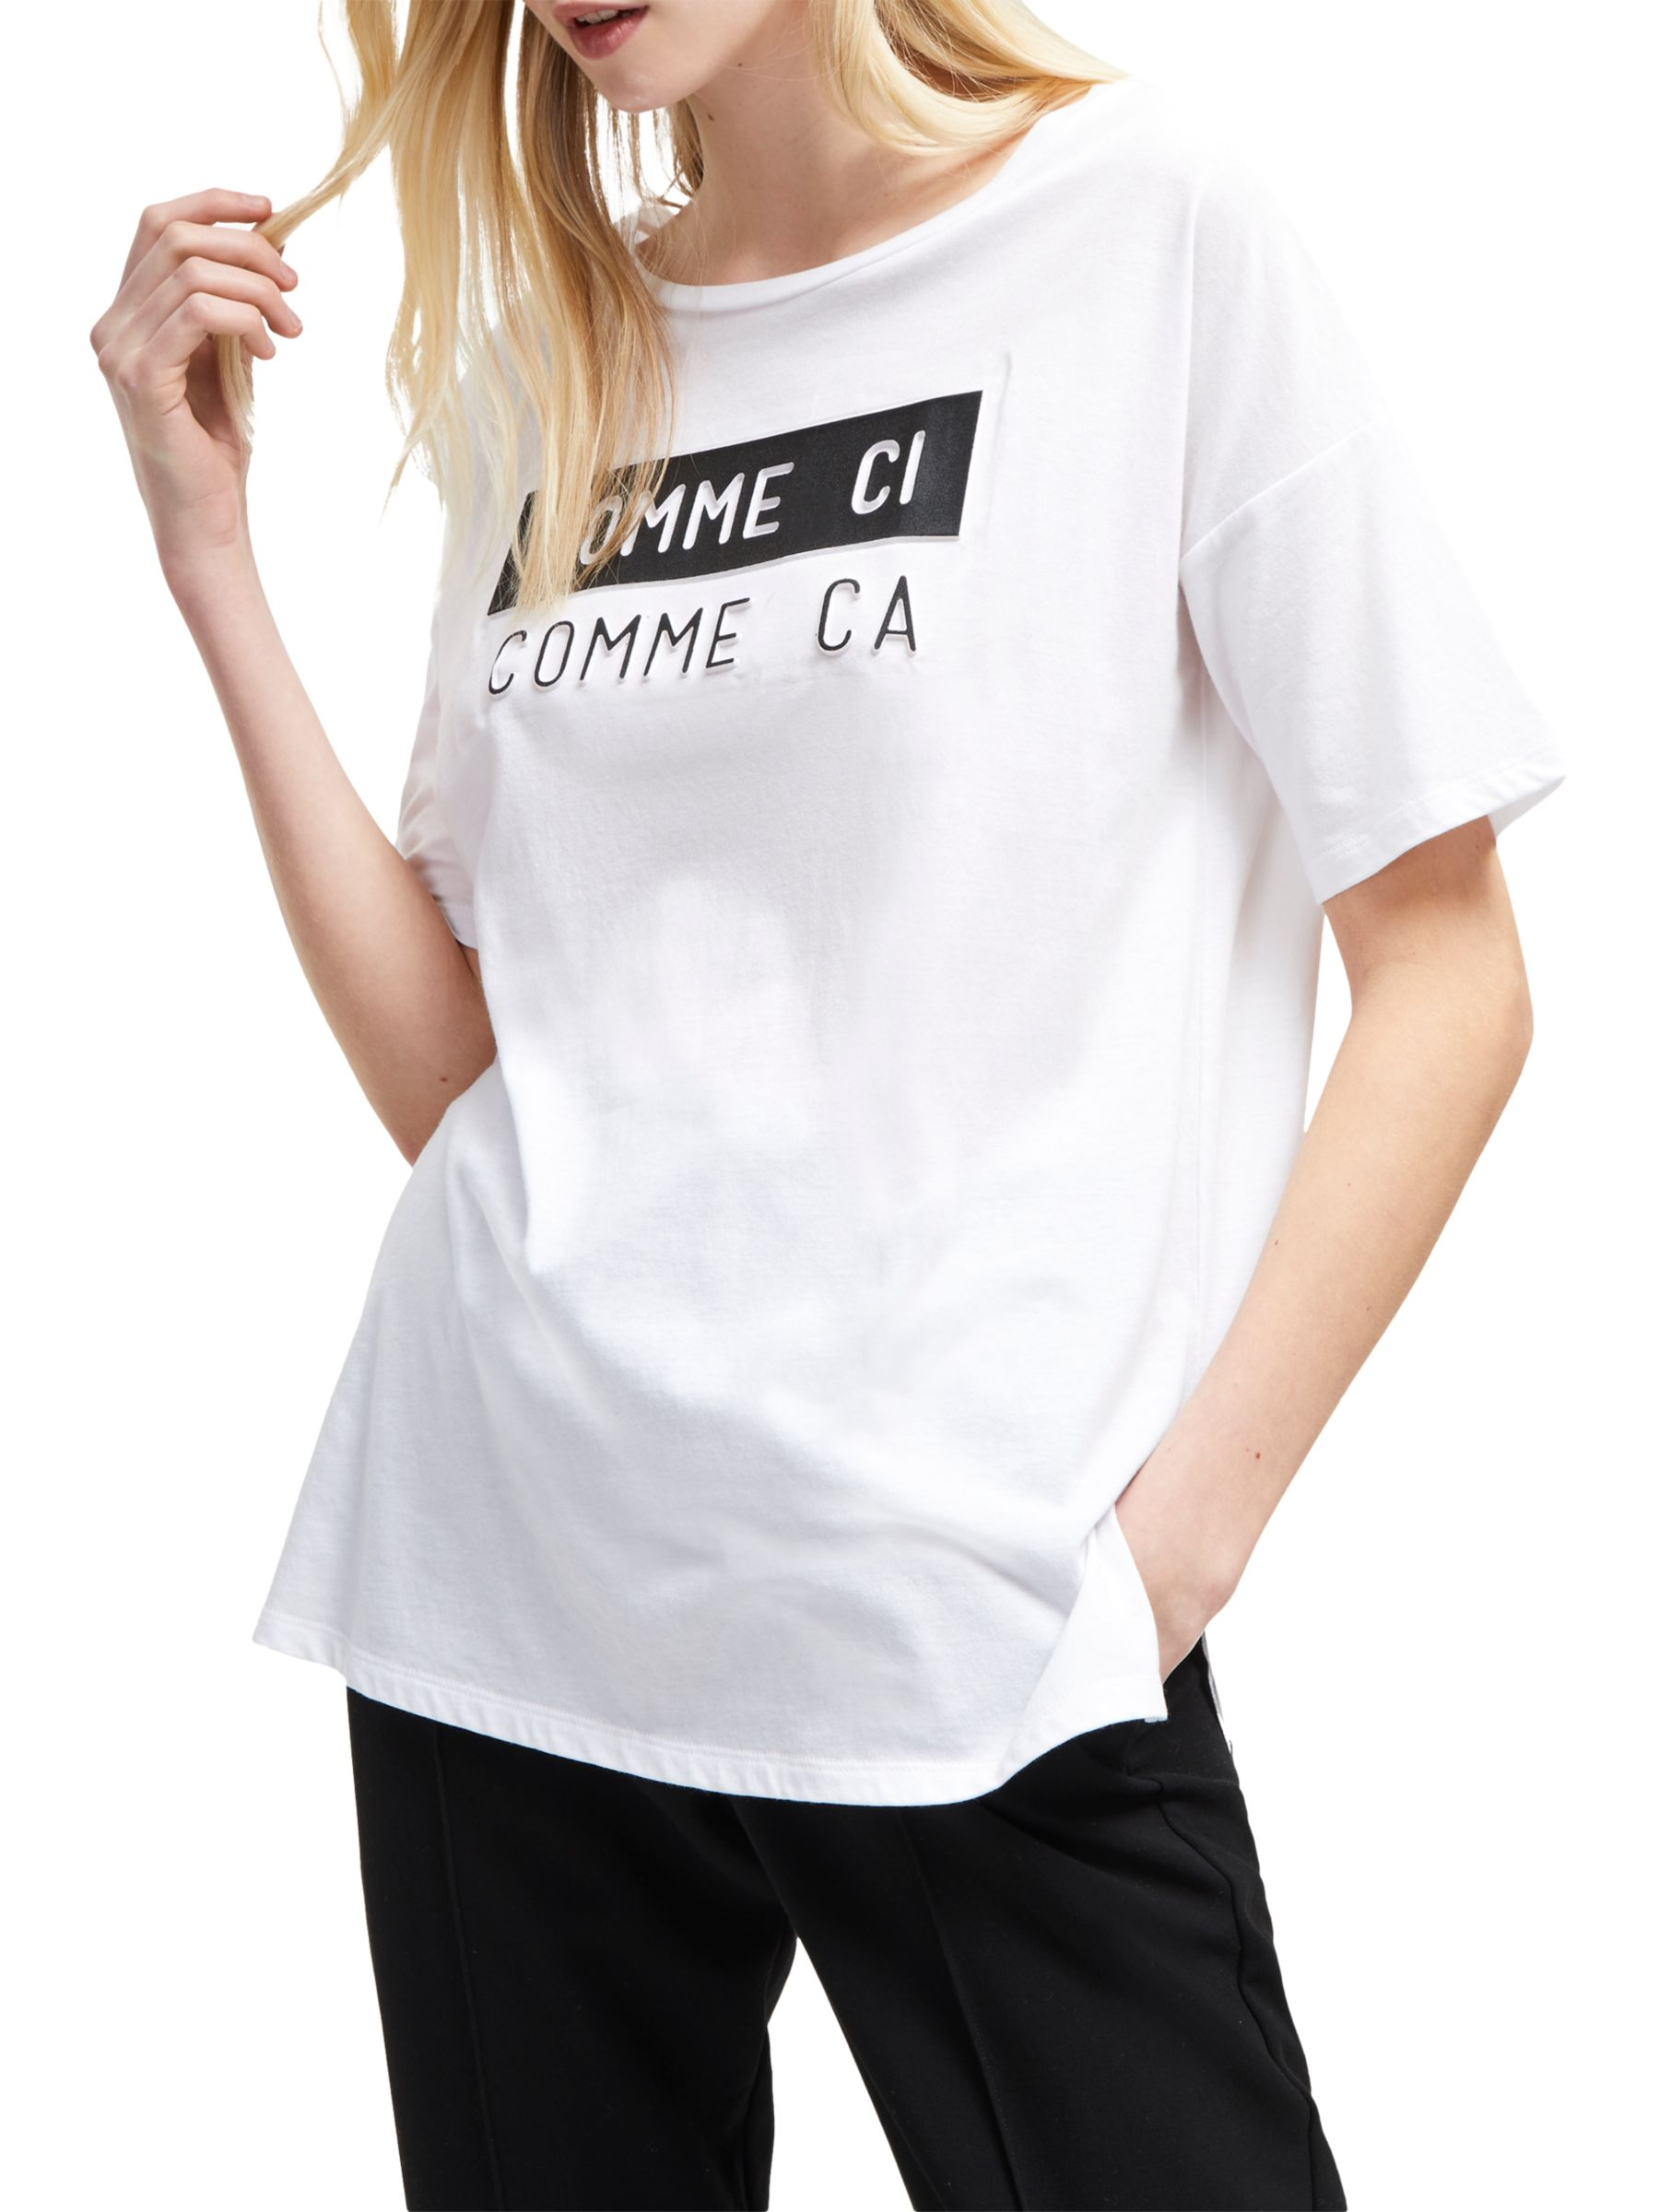 French Connection French Connection Comme Ci T-Shirt, White